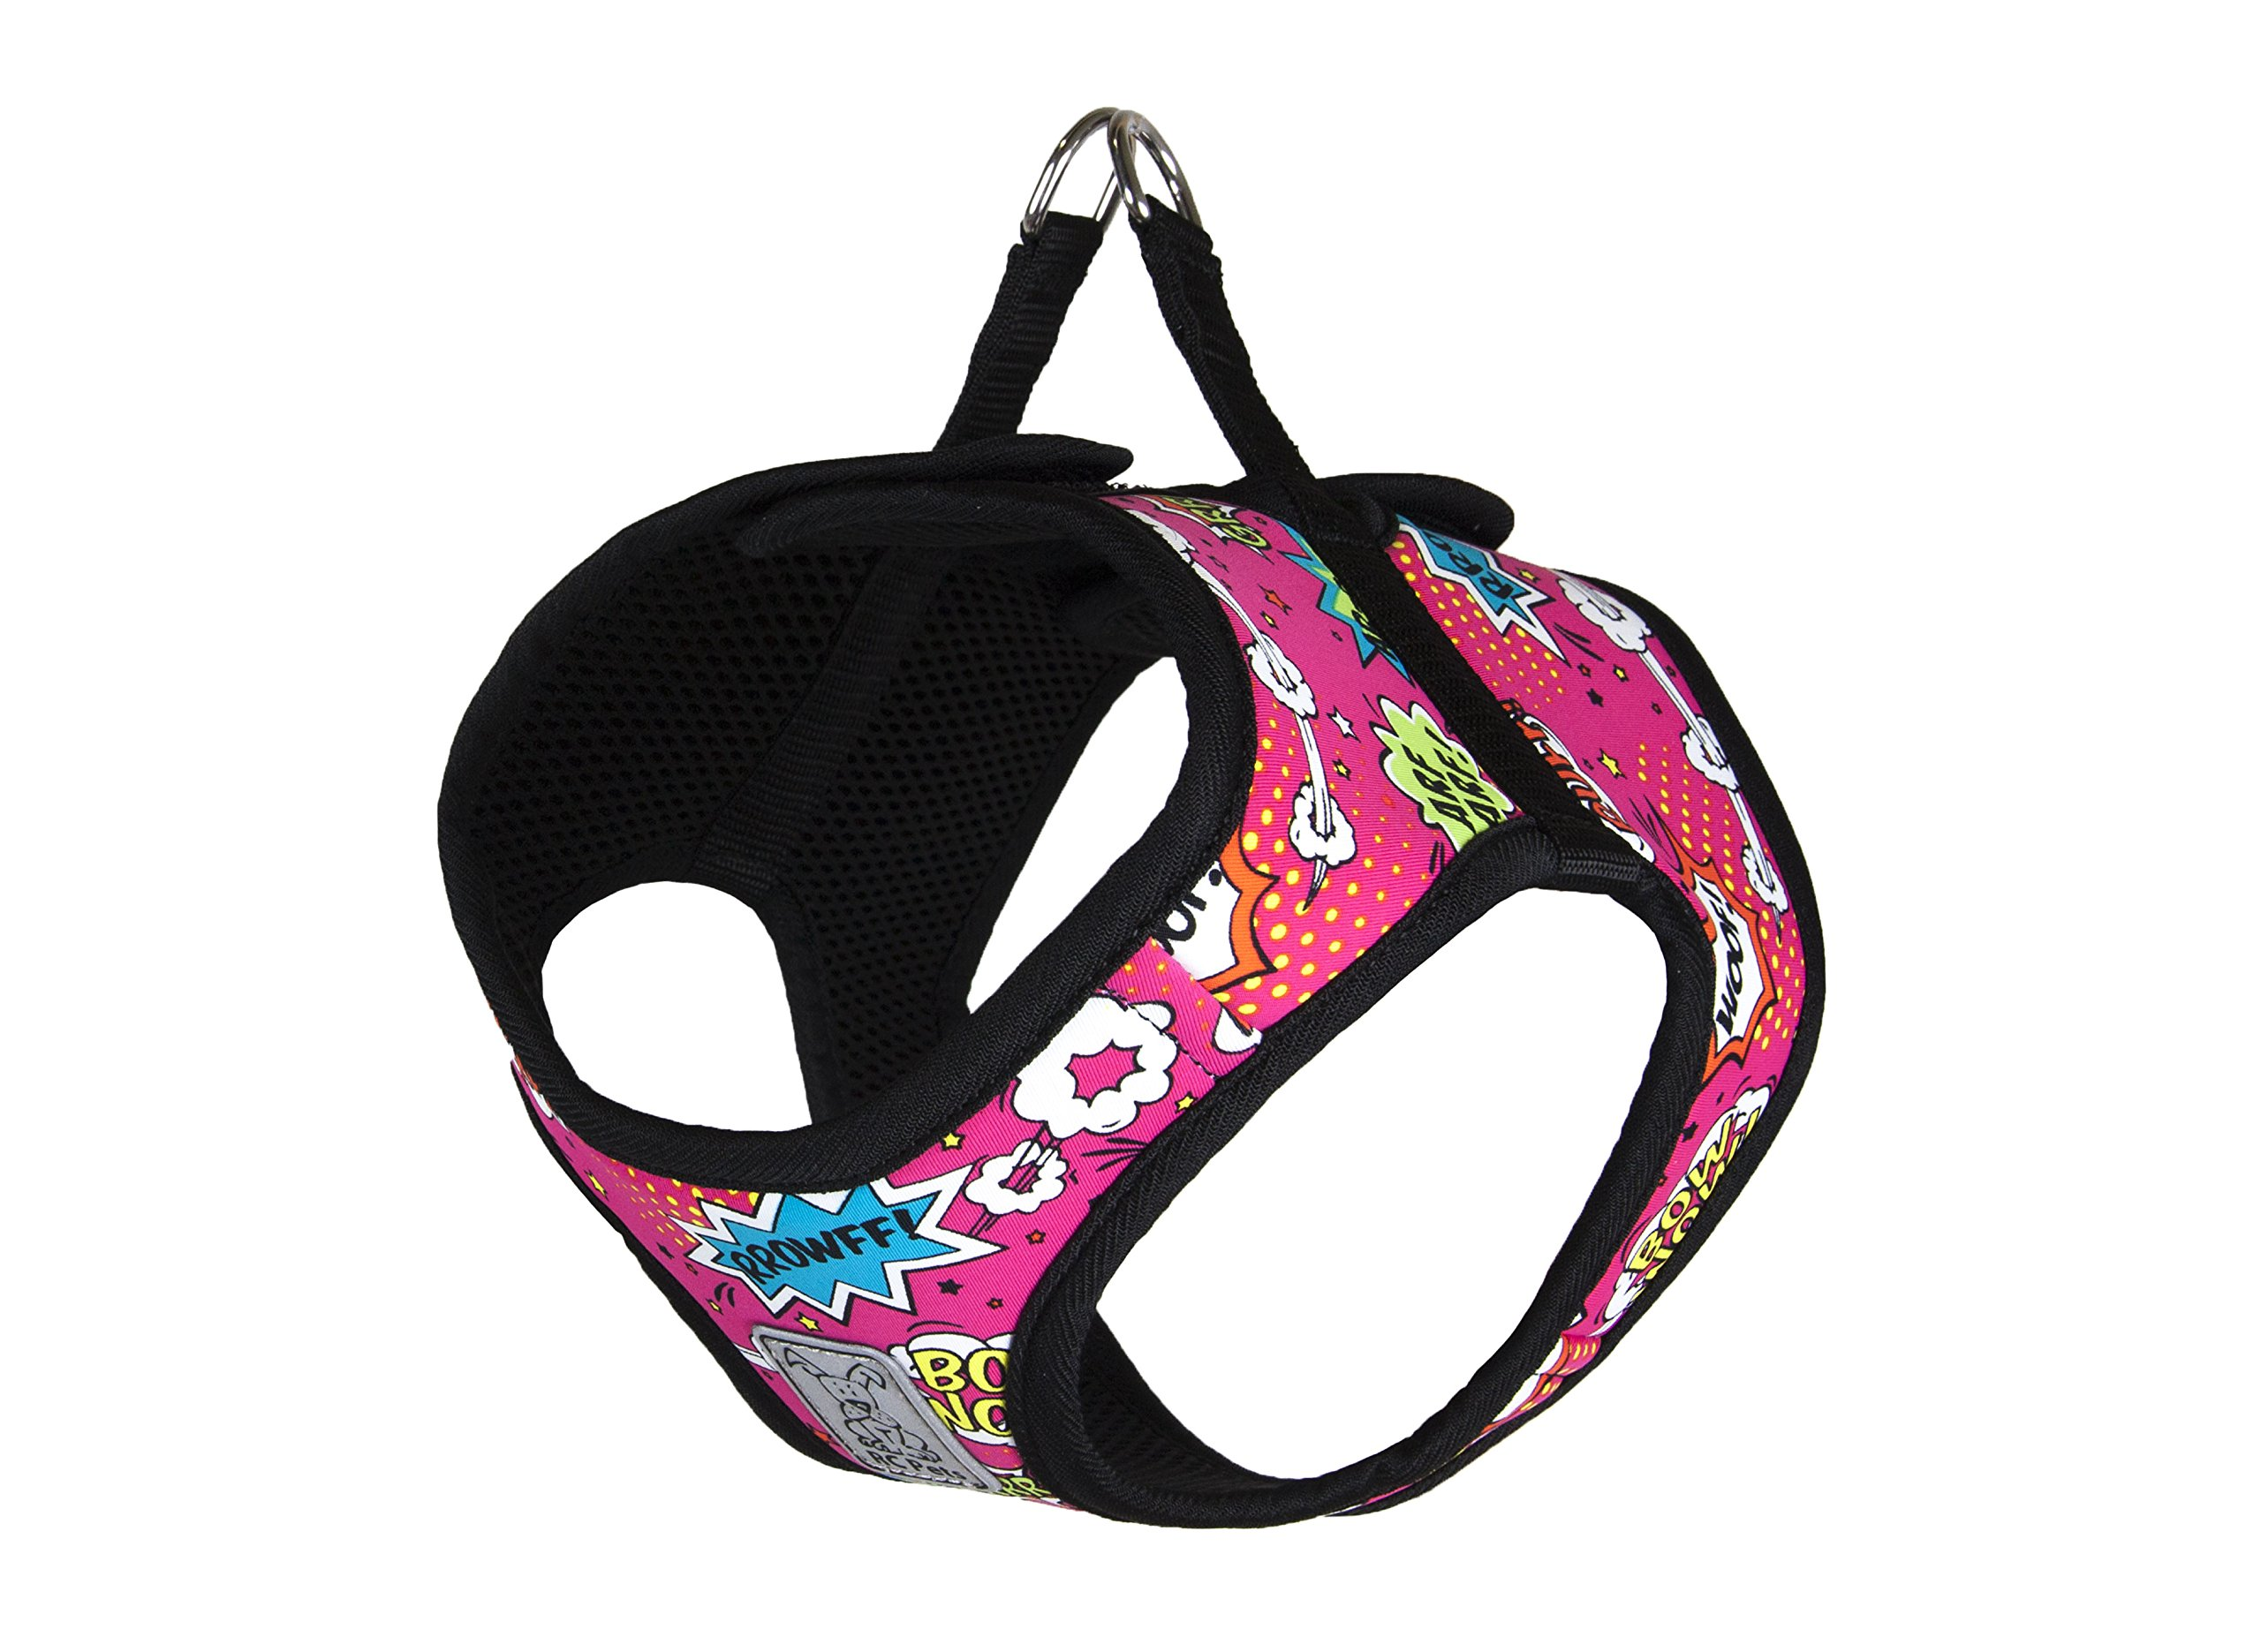 RC Pet Products Cirque Soft Walking Step-in Dog Harness, Pink Comic Sounds, Large